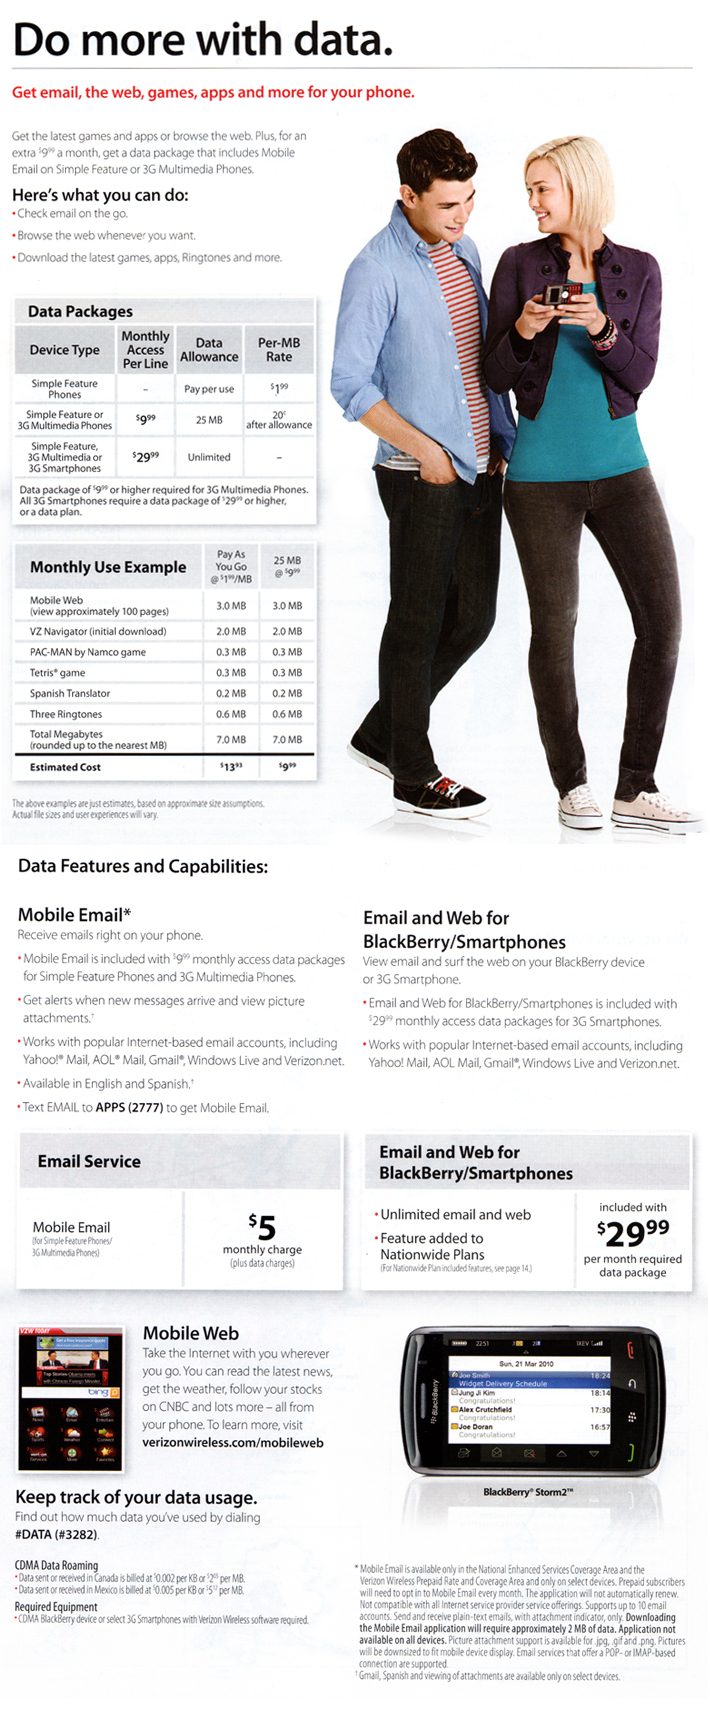 verizon wireless family plan submited images pic2fly